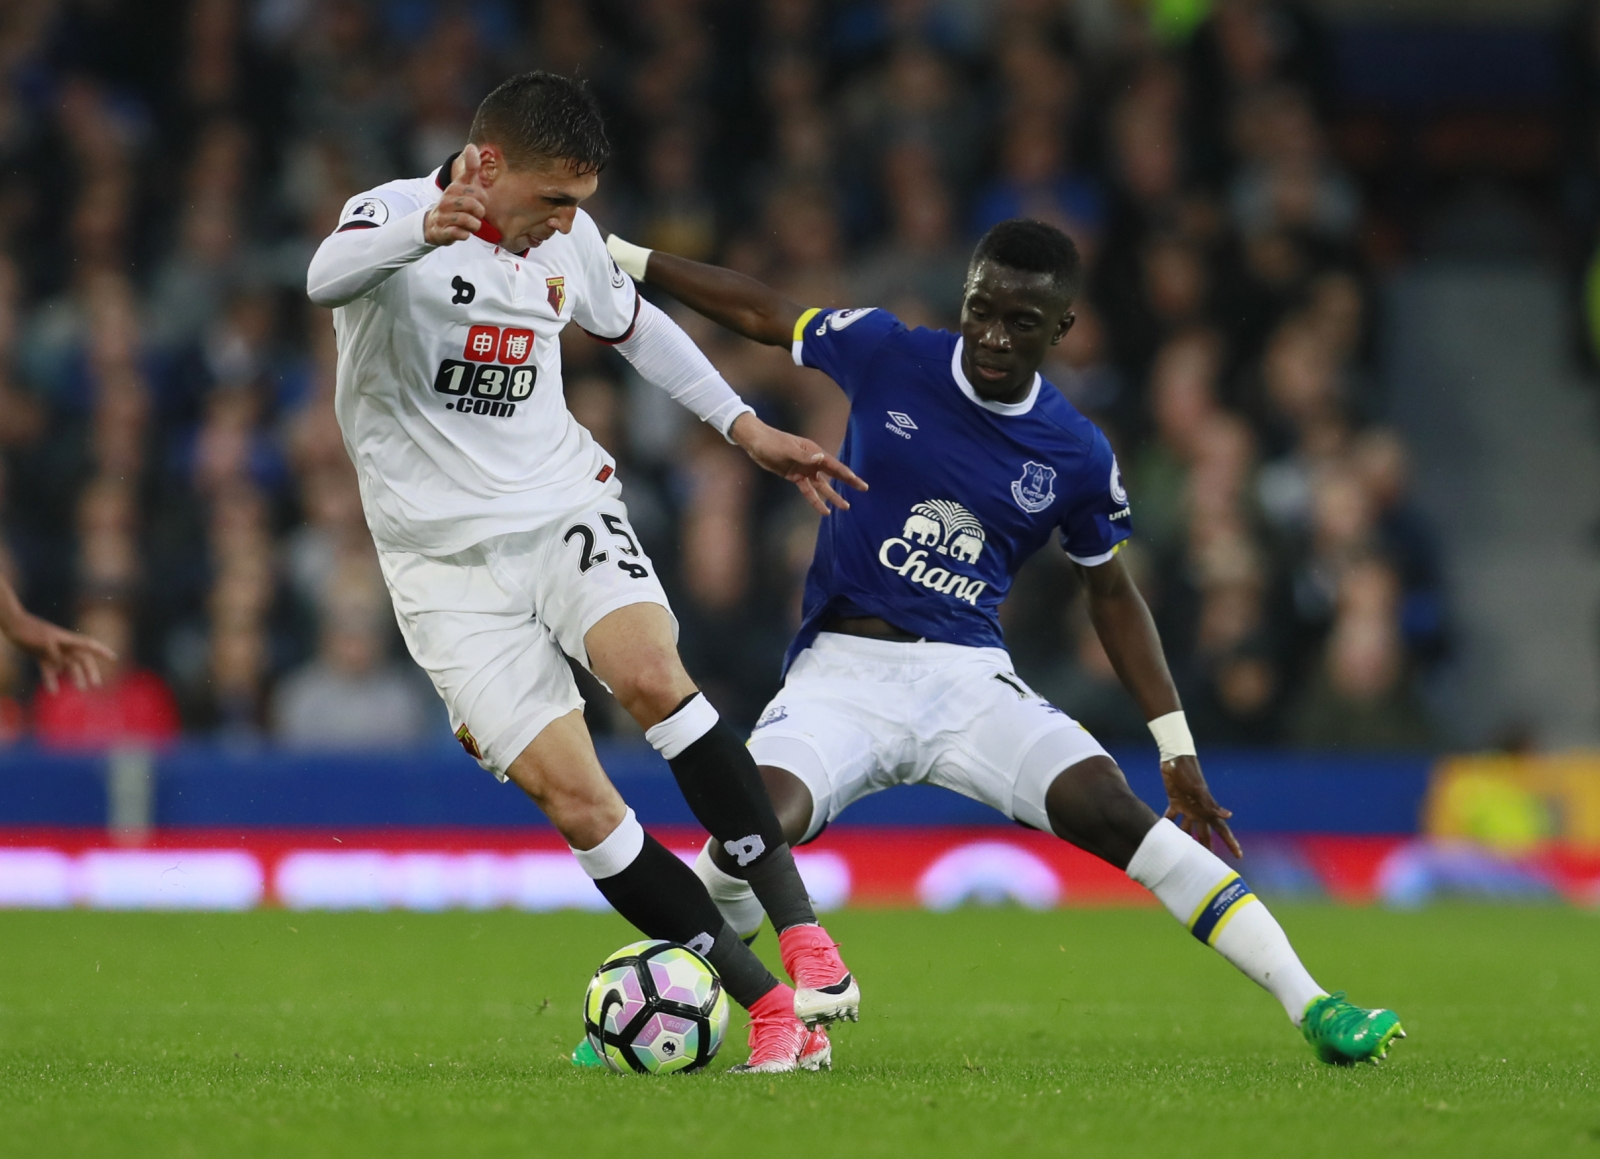 Koeman says Everton to make Barkley statement on Monday